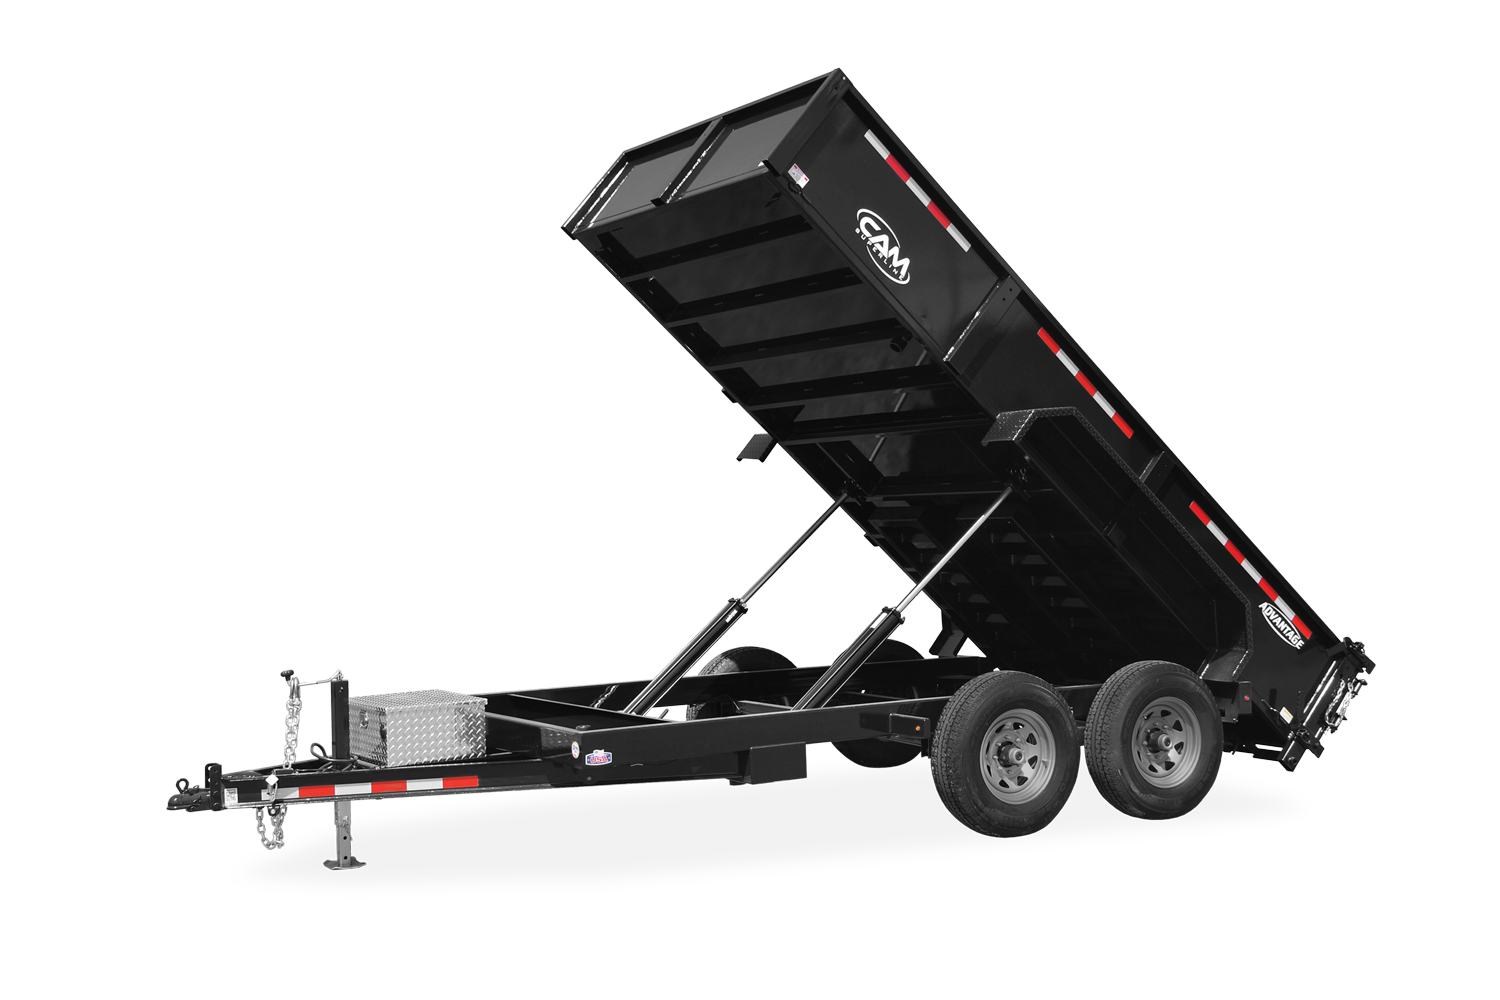 "2021 Cam Superline 6 Ton Advantage HD 81"" wide x 12' Low Profile Dump Trailer"